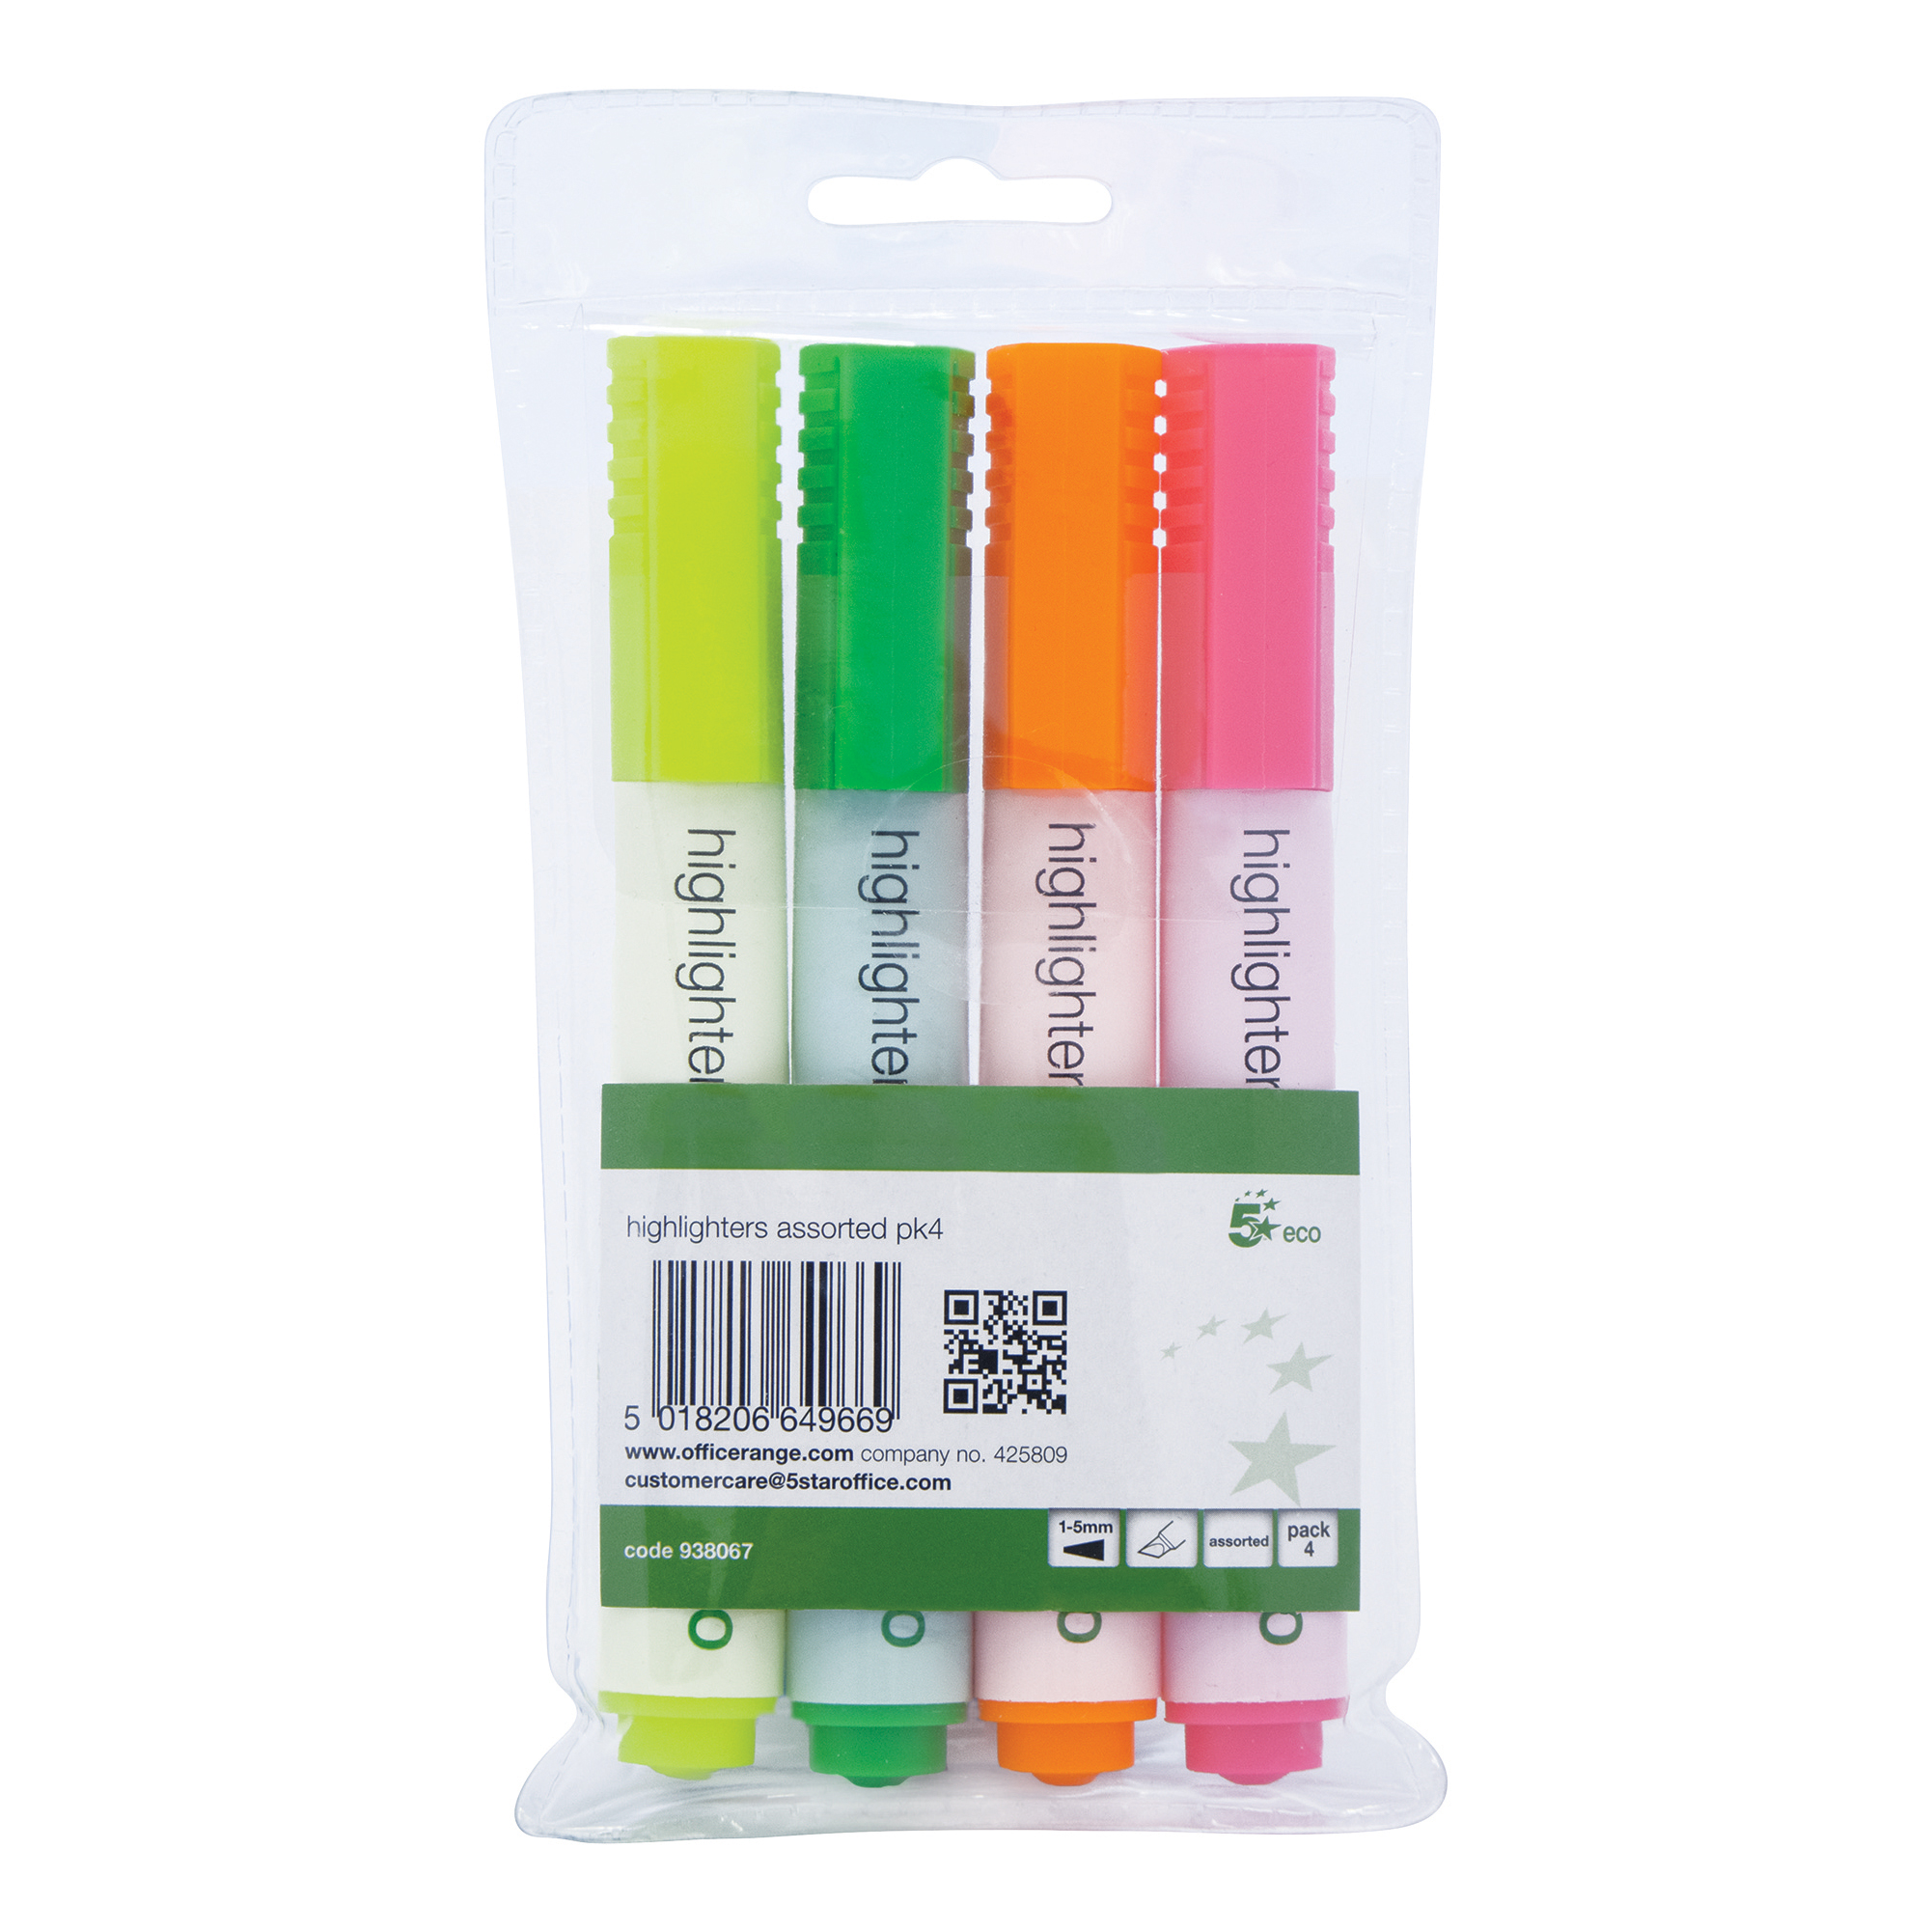 5 Star Eco Highlighter Chisel Tip 1-5mm Line Wallet Assorted [Pack 4]